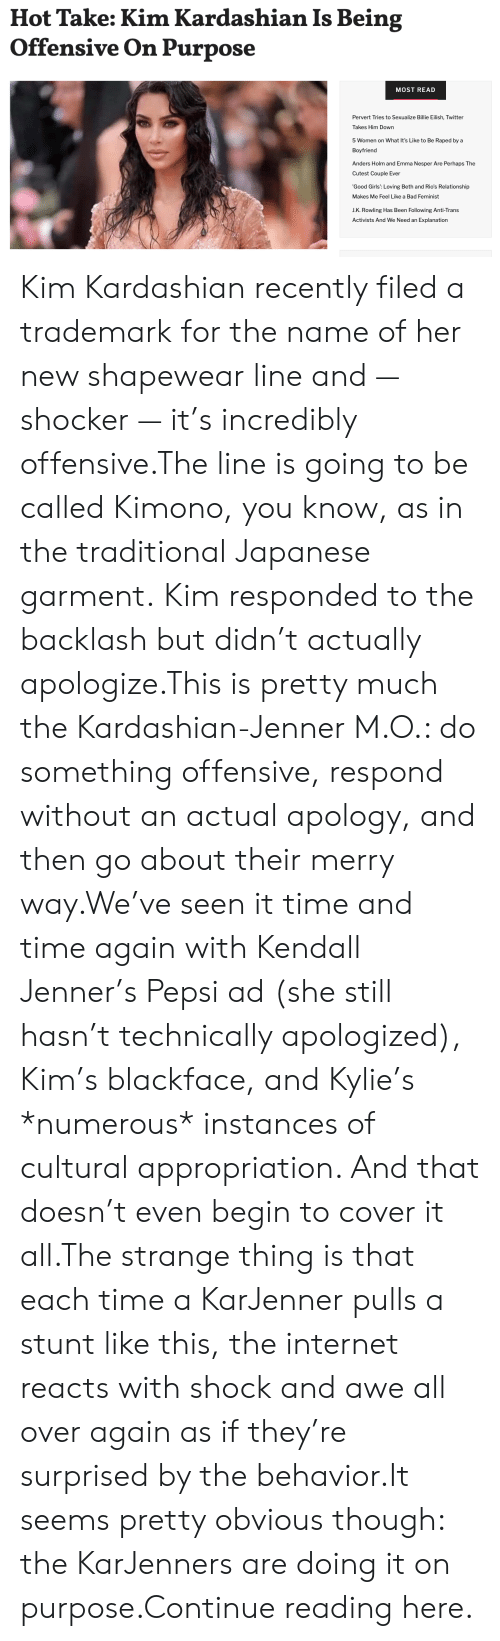 Kendall Jenner: Hot Take: Kim Kardashian Is Being  Offensive On Purpose  MOST READ  Pervert Tries to Sexualize Billie Eilish, Twitter  Takes Him Down  5 Women on What It's Like to Be Raped by a  Boyfriend  Anders Holm and Emma Nesper Are Perhaps The  Cutest Couple Ever  'Good Girls': Loving Beth and Rio's Relationship  Makes Me Feel Like a Bad Feminist  J.K. Rowling Has Been Following Anti-Trans  Activists And We Need an Explanation Kim Kardashian recently filed a trademark for the name of her new shapewear line and — shocker — it's incredibly offensive.The line is going to be called Kimono, you know, as in the traditional Japanese garment. Kim responded to the backlash but didn't actually apologize.This is pretty much the Kardashian-Jenner M.O.: do something offensive, respond without an actual apology, and then go about their merry way.We've seen it time and time again with Kendall Jenner's Pepsi ad (she still hasn't technically apologized), Kim's blackface, and Kylie's *numerous* instances of cultural appropriation. And that doesn't even begin to cover it all.The strange thing is that each time a KarJenner pulls a stunt like this, the internet reacts with shock and awe all over again as if they're surprised by the behavior.It seems pretty obvious though: the KarJenners are doing it on purpose.Continue reading here.